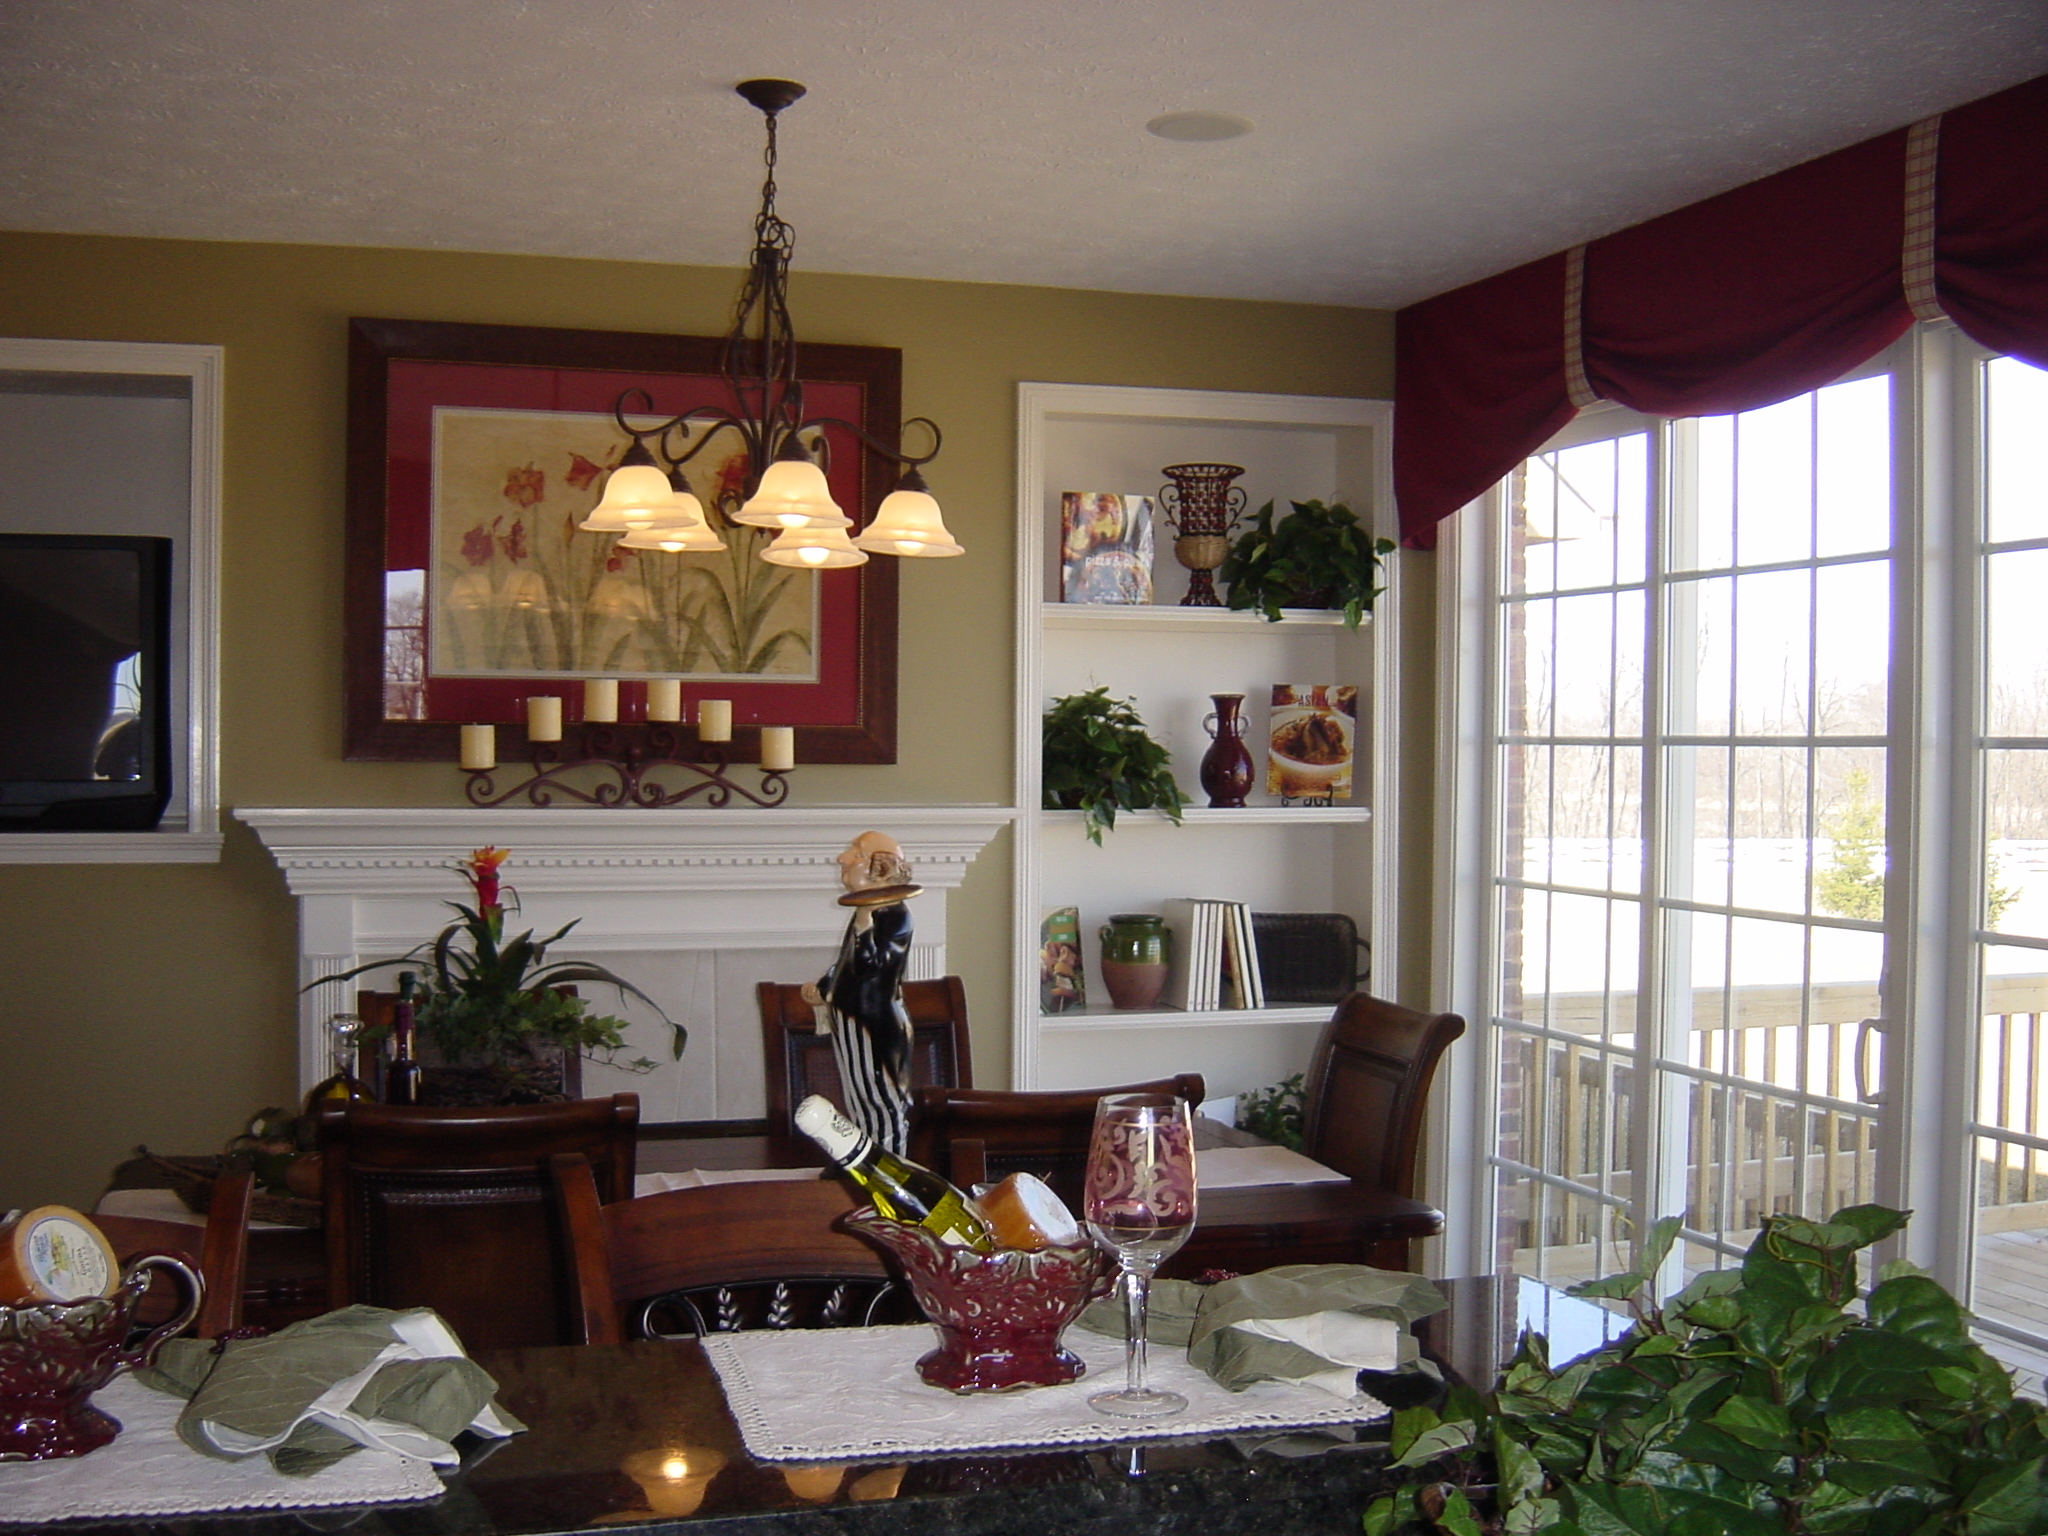 Home Improvement and Remodeling Contractor Ideas and Pictures